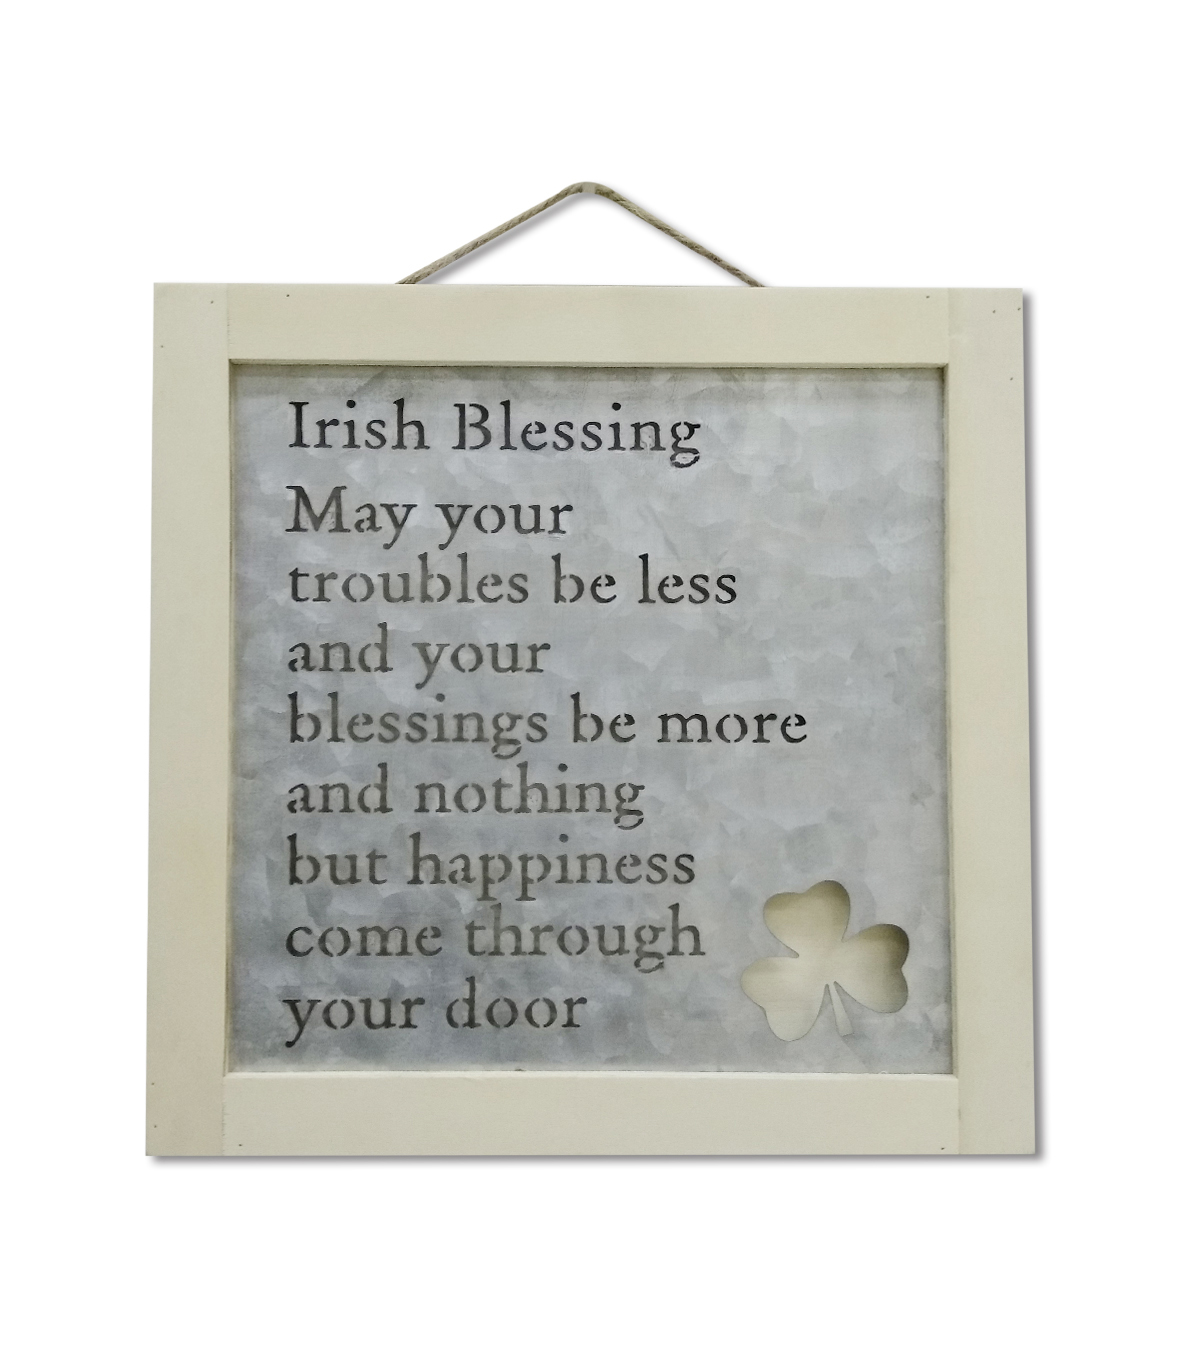 St. Patrick\u0027s Day Craft Wood Frame with Metal-Irish Blessing